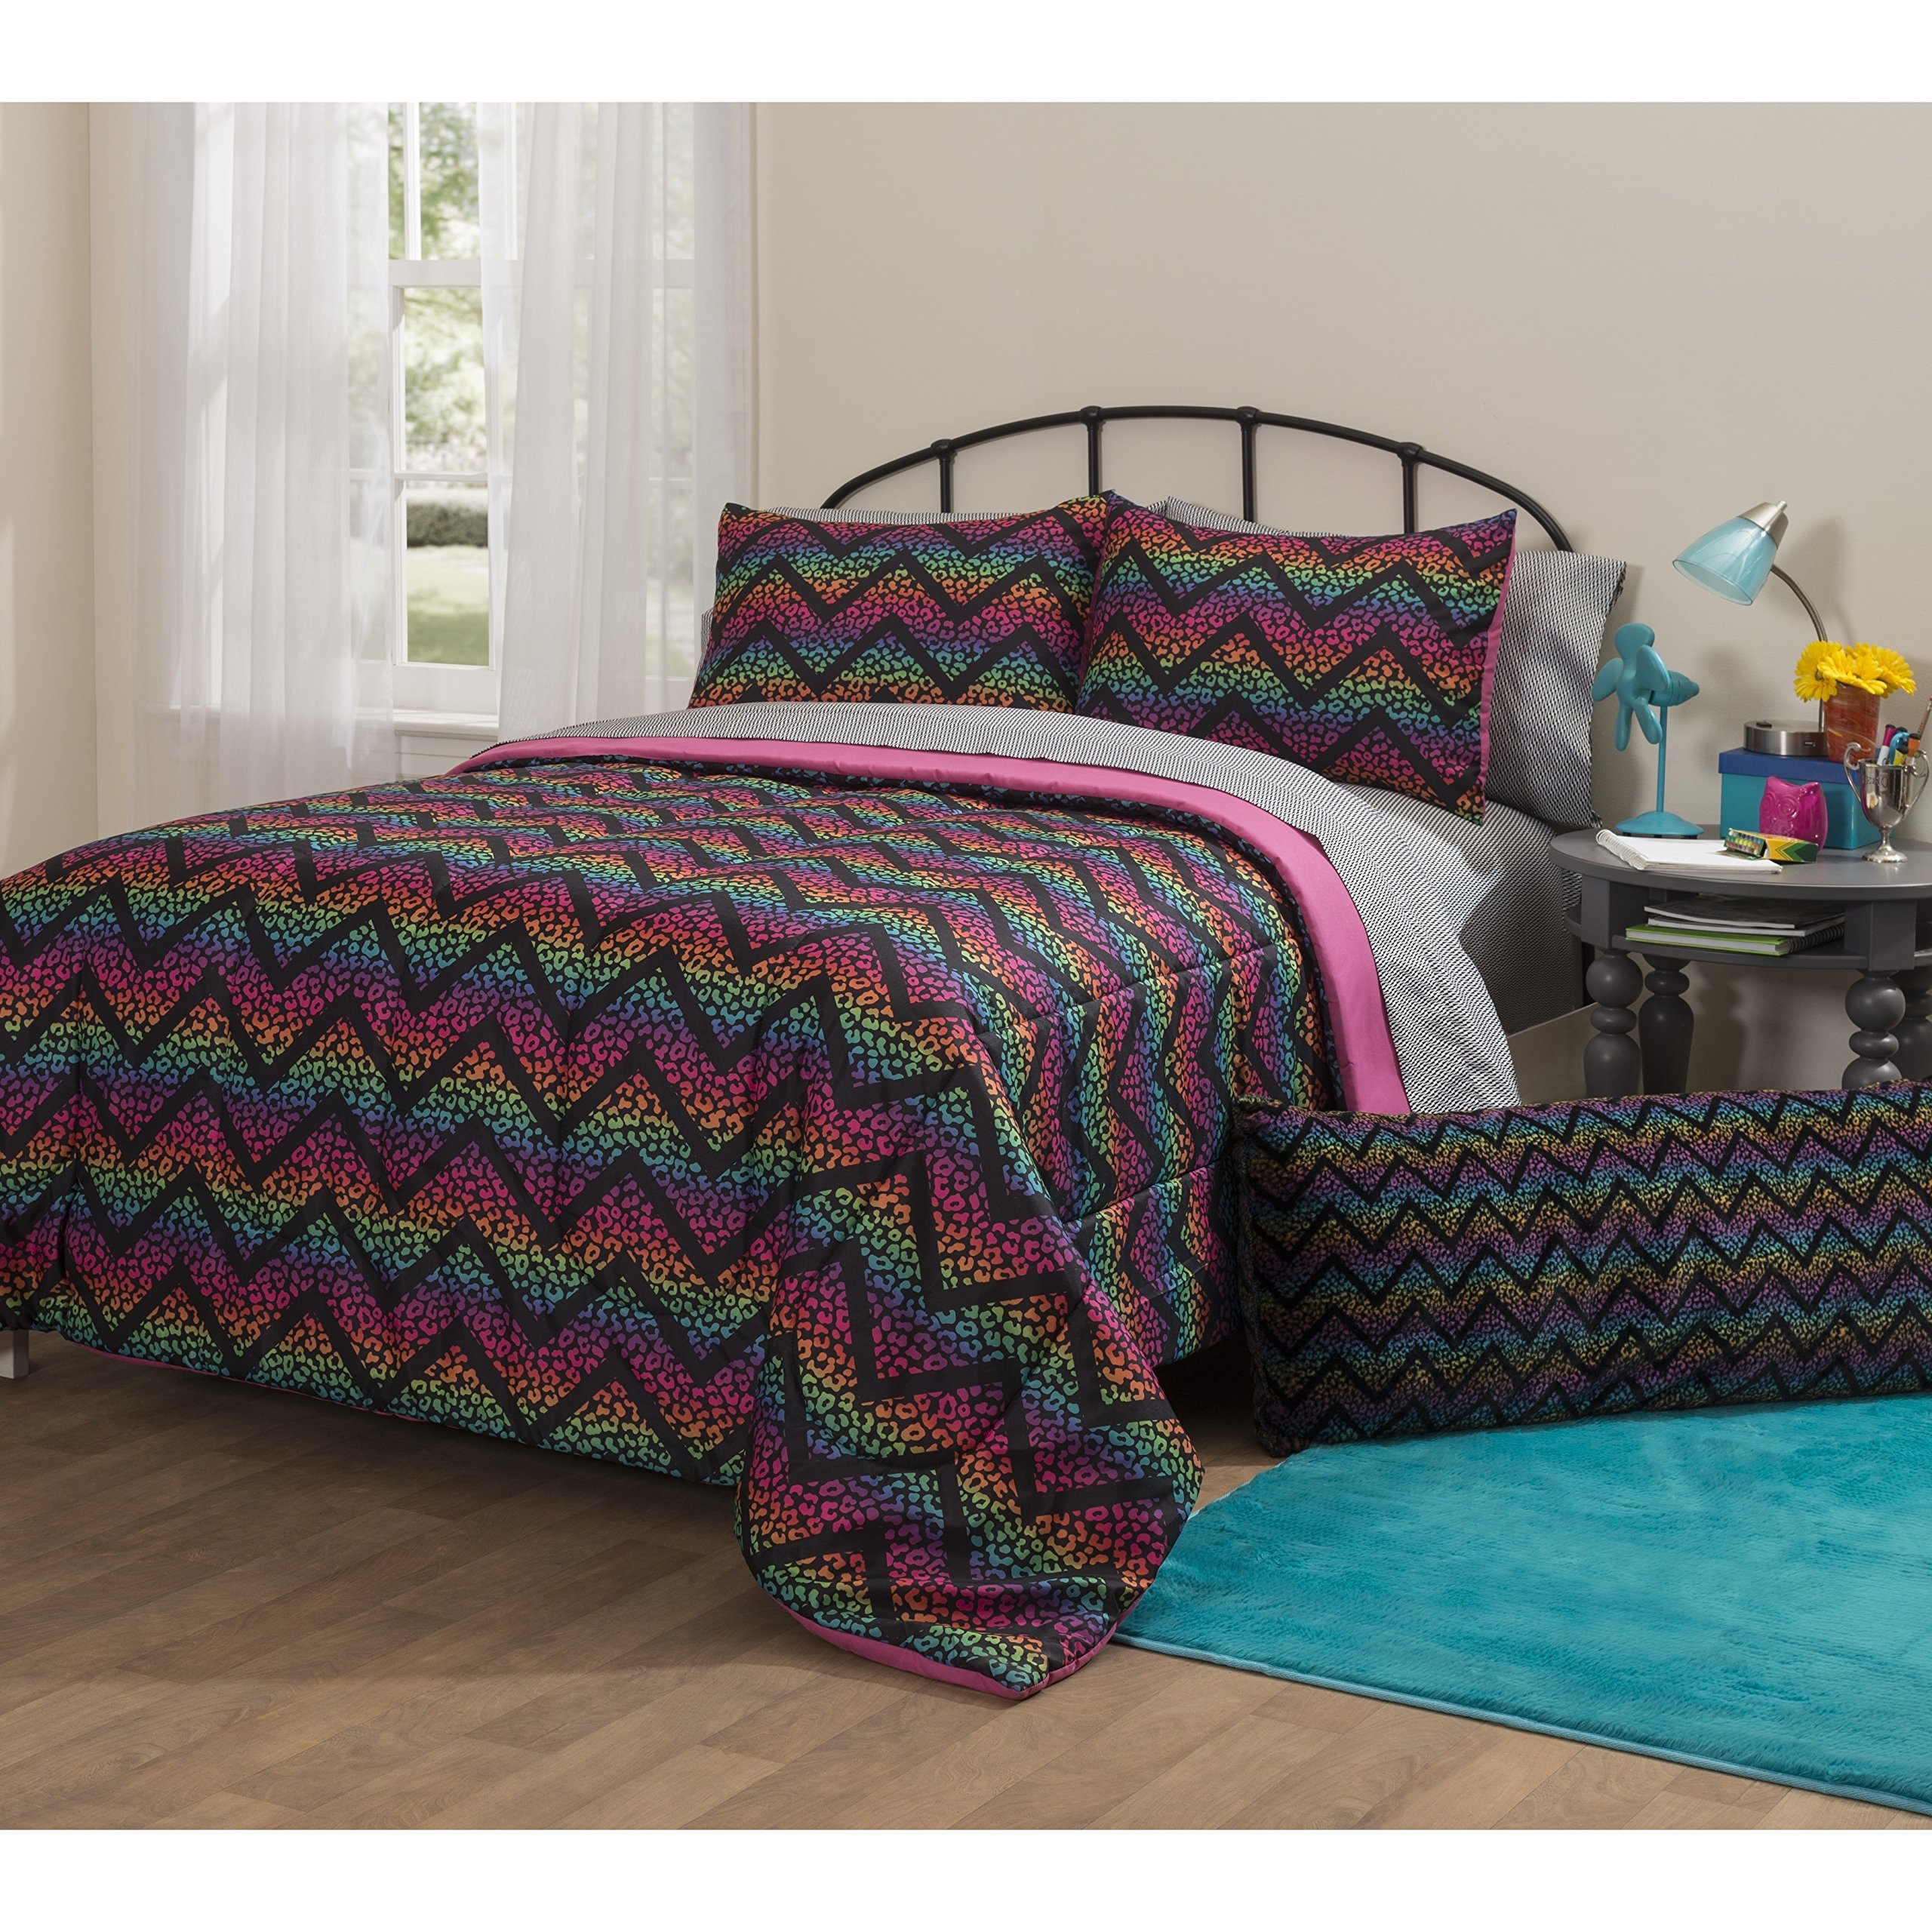 7 Piece Girls Pink Purple Rainbow Cheetah Comforter Set Full Sized, Exotic Cat Bedding Colorful Chevron Pattern Spotted Print Ombre Colors Teal Blue Yellow Orange Black, Soft Microfiber Polyester